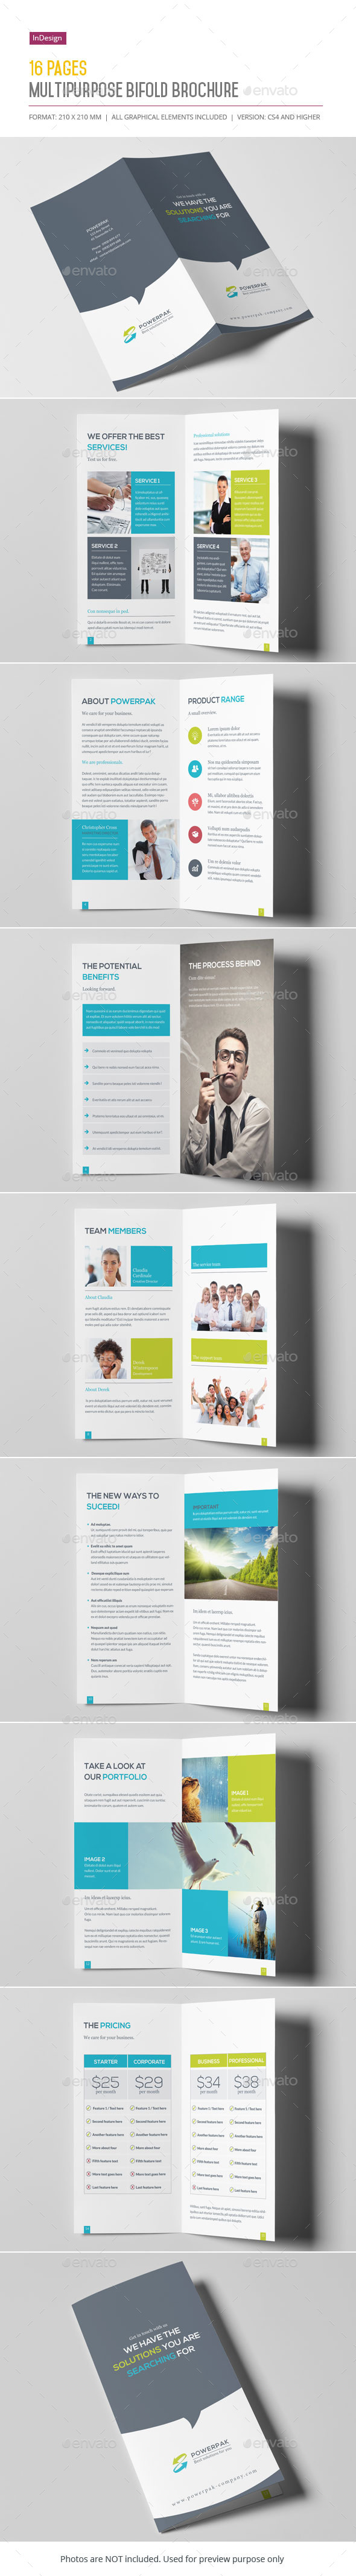 GraphicRiver Multipurpose Bifold Brochure 10646978